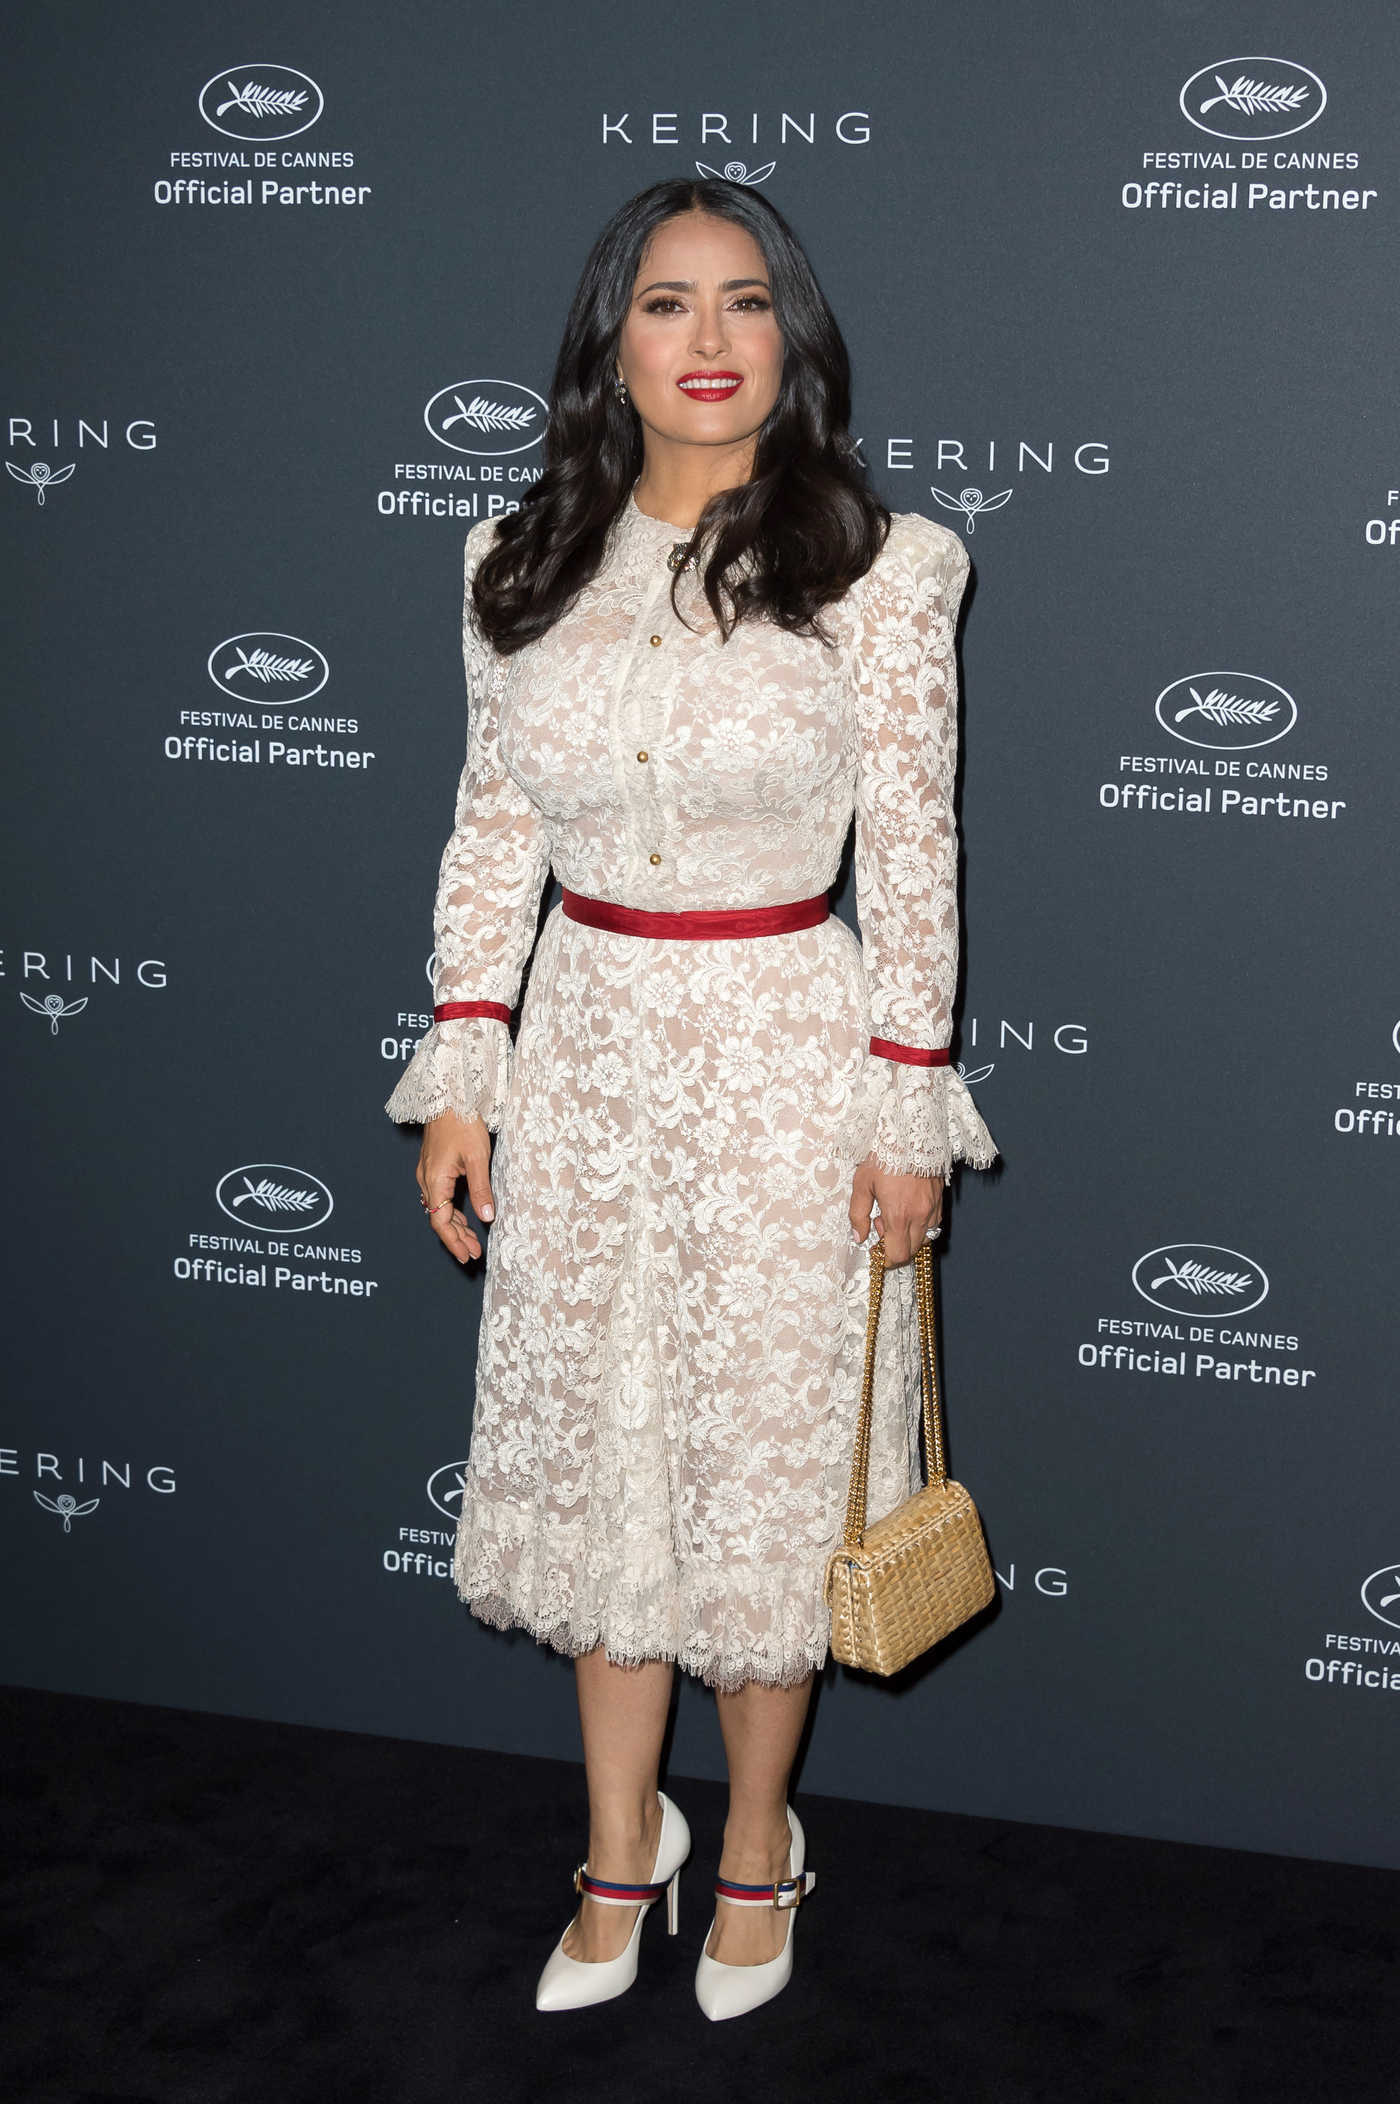 Salma Hayek at the Kering Dinner During the 71st Annual Cannes Film Festival 05/13/2018